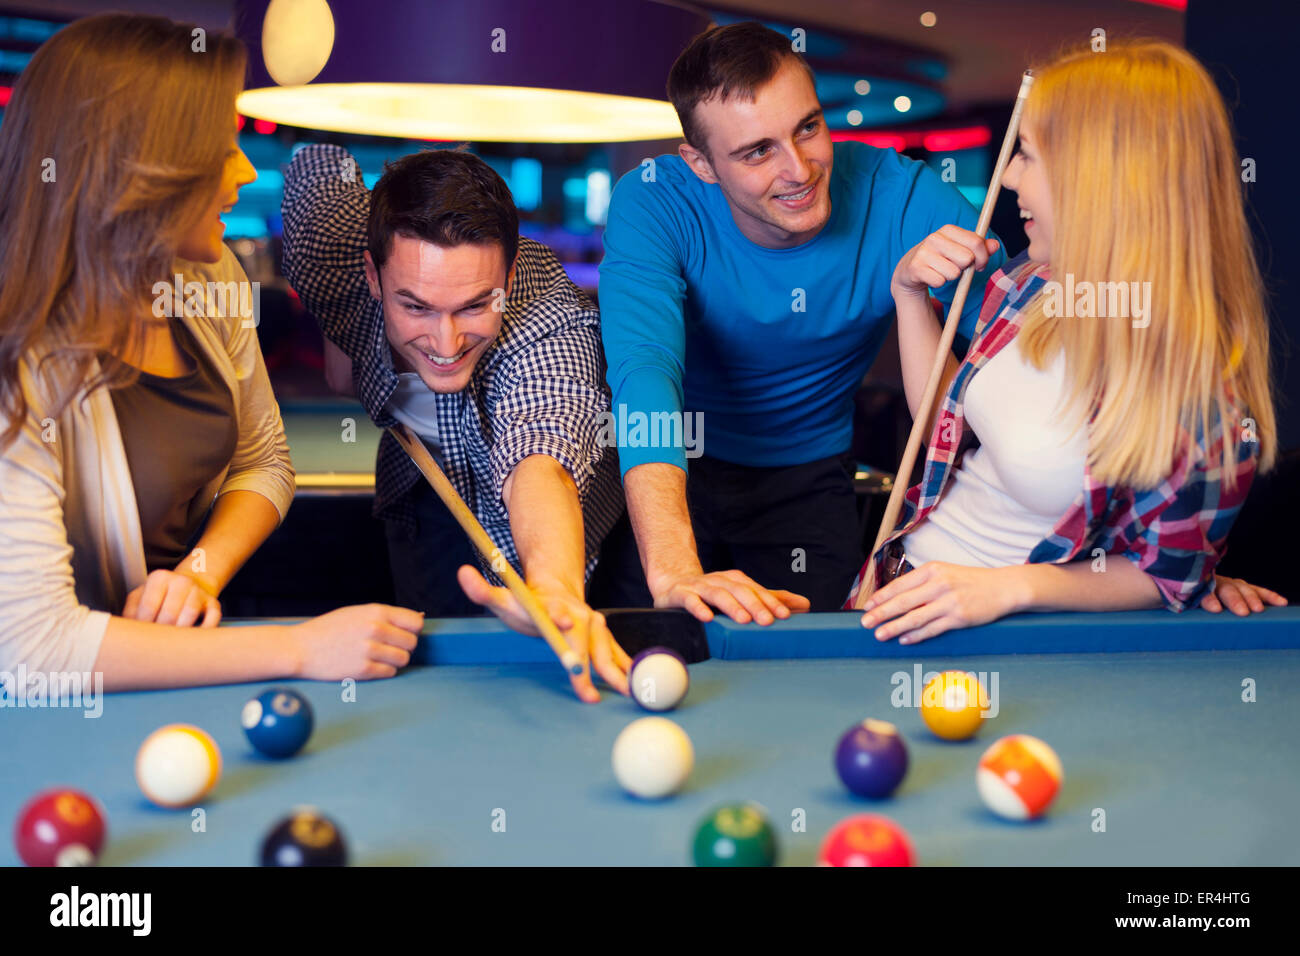 Friends hanging out at the bowling alley - Stock Image